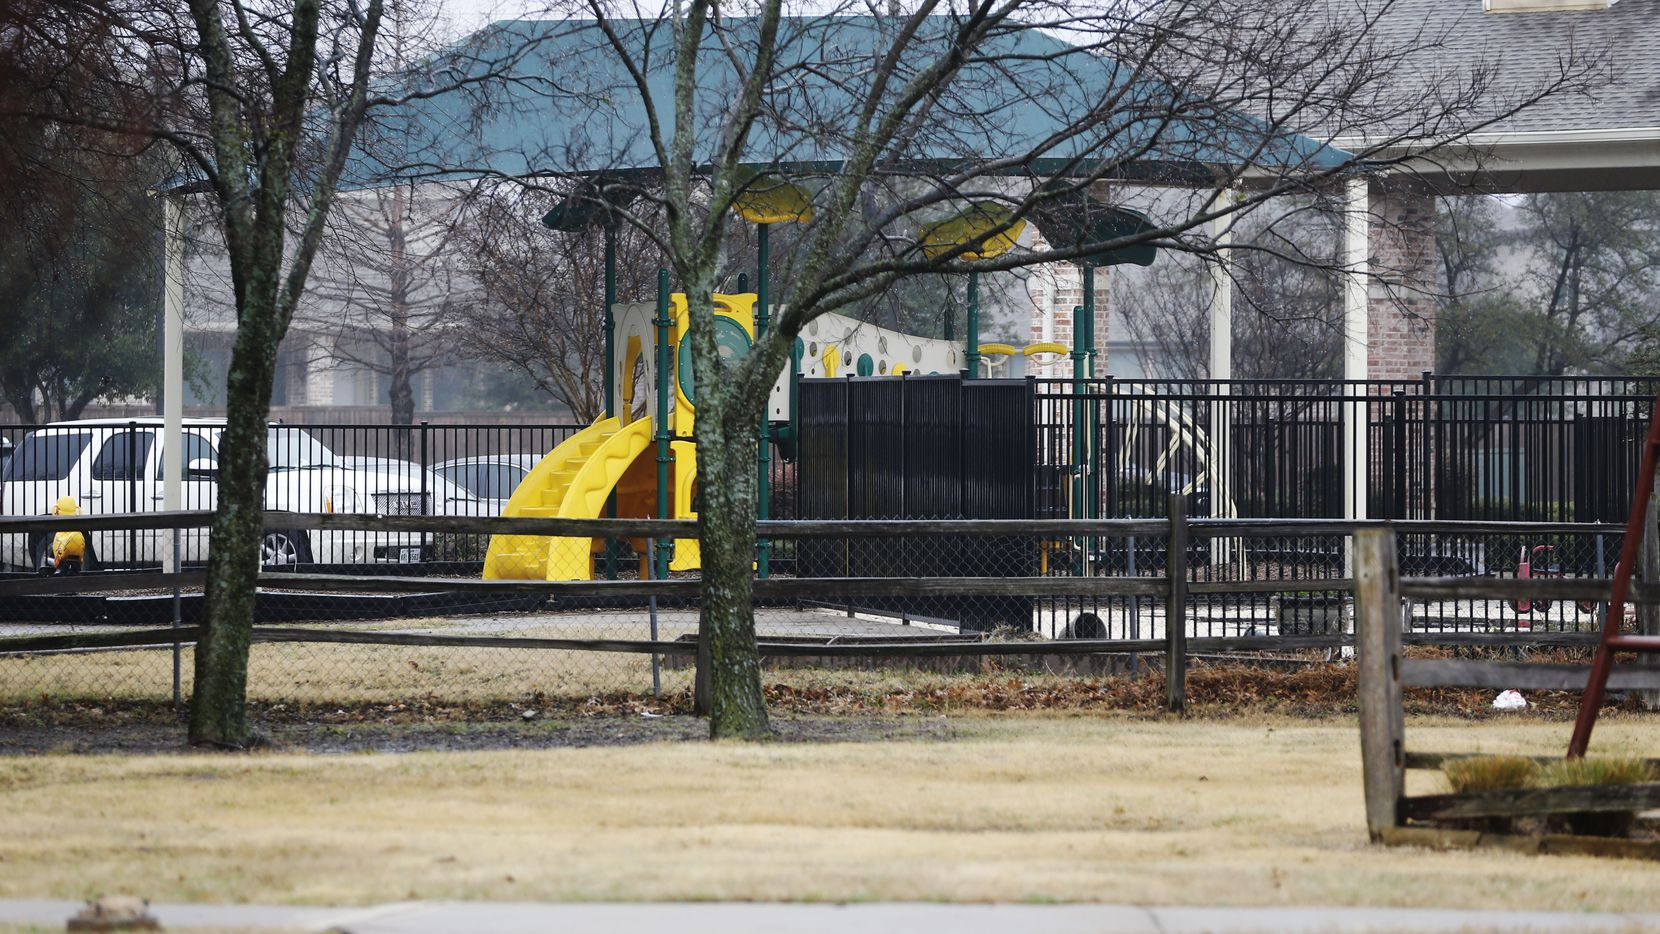 Joyous Montessori continues to operate its childcare facility after firing a staff member accused of injury to a child.